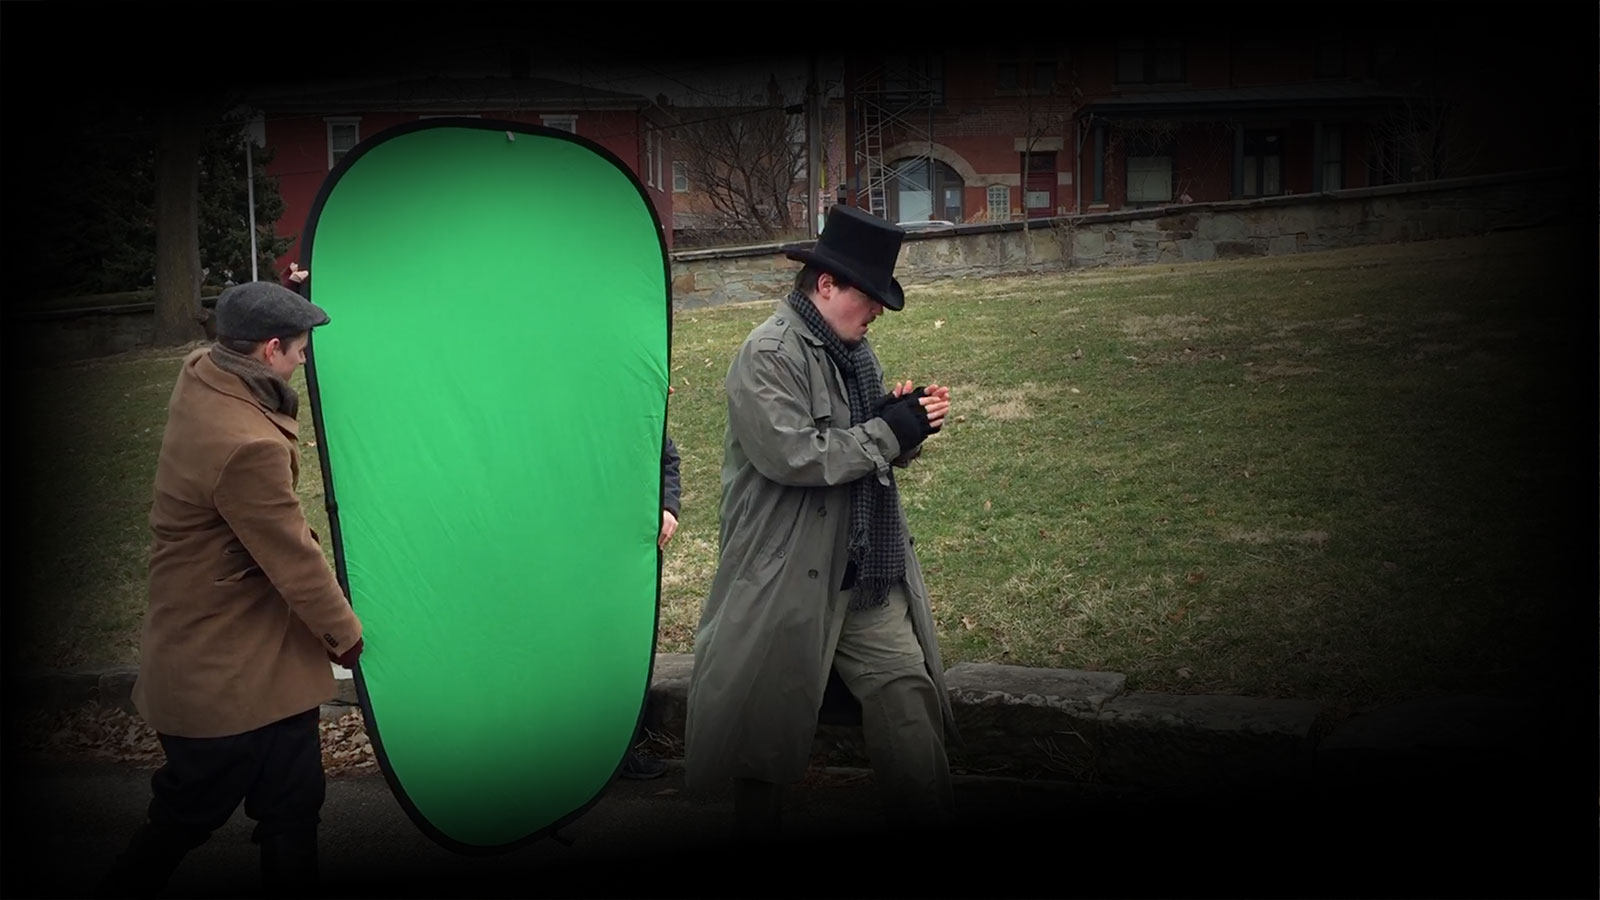 Background image an on-set greenscreen